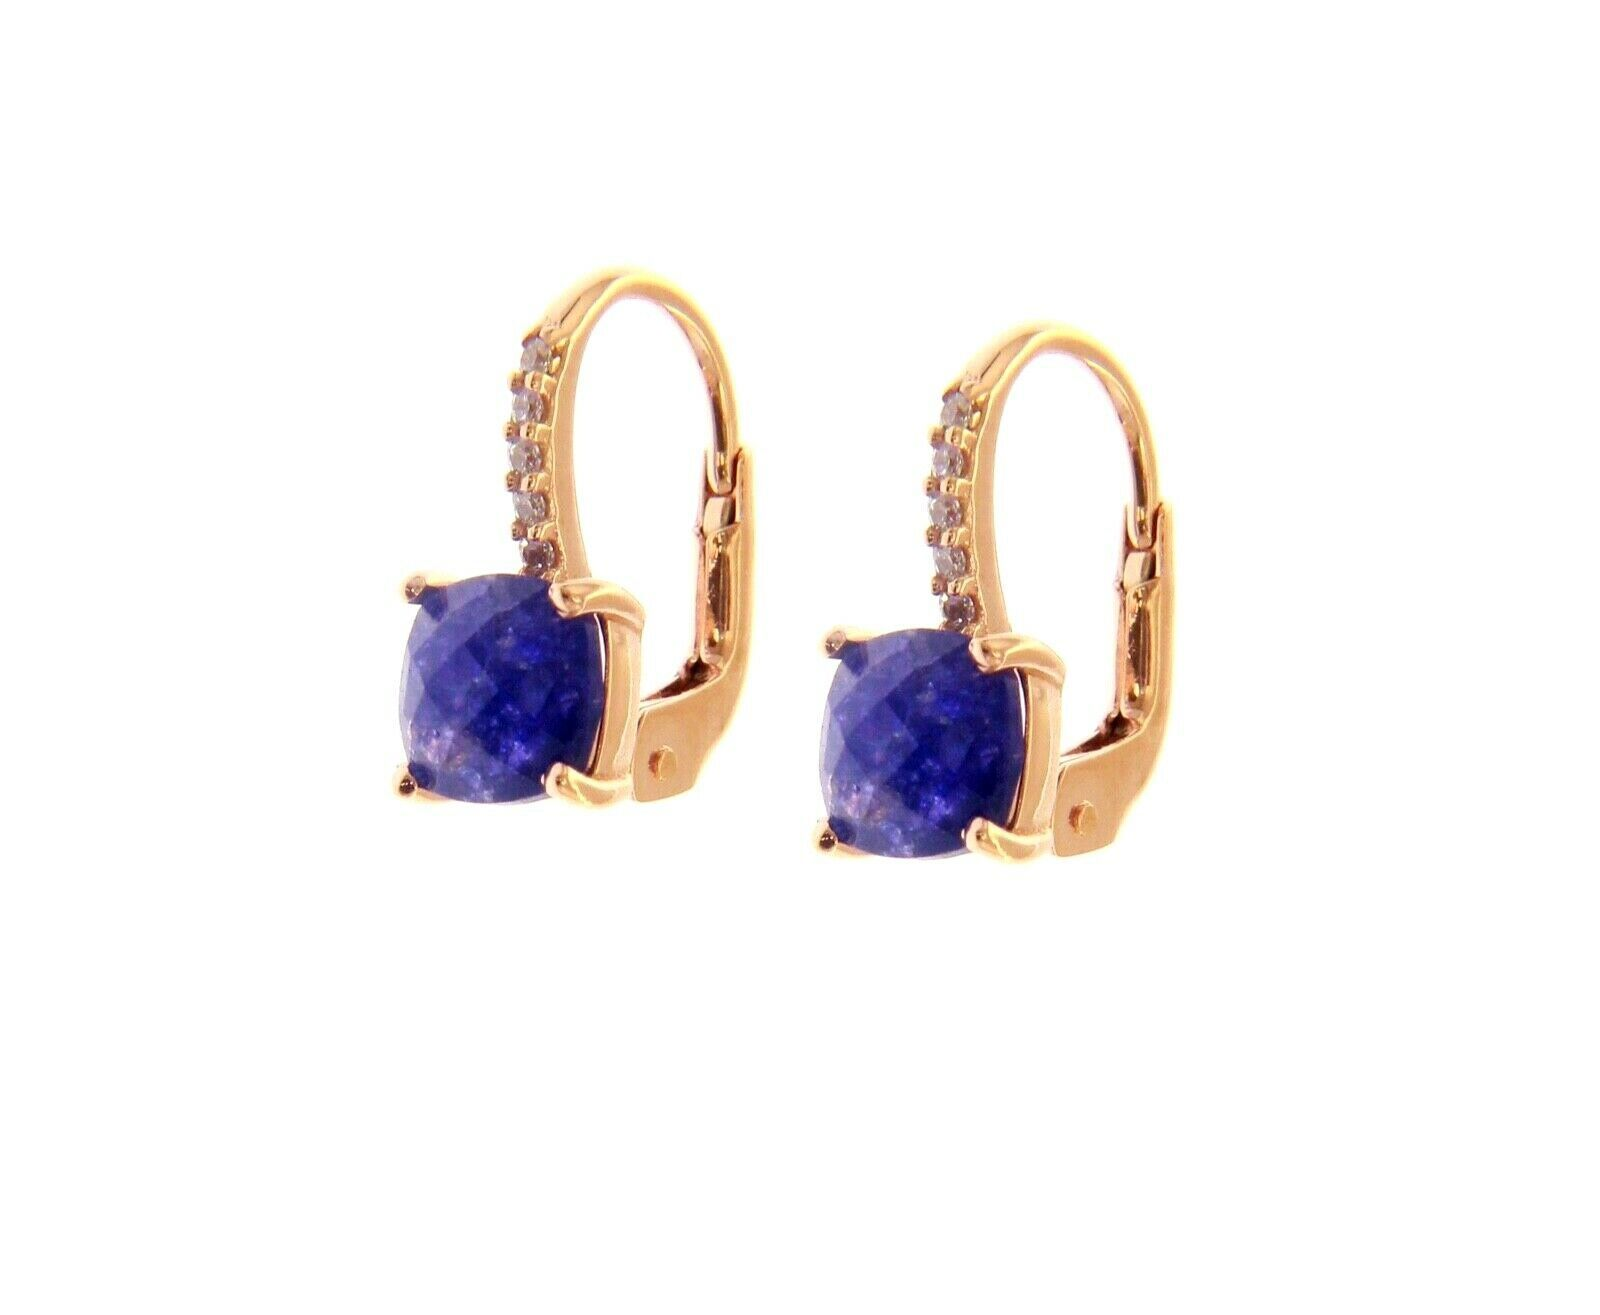 18K ROSE GOLD PENDANT EARRINGS WITH CUBIC ZIRCONIA & BLUE SAPPHIRE CUSHION CUT